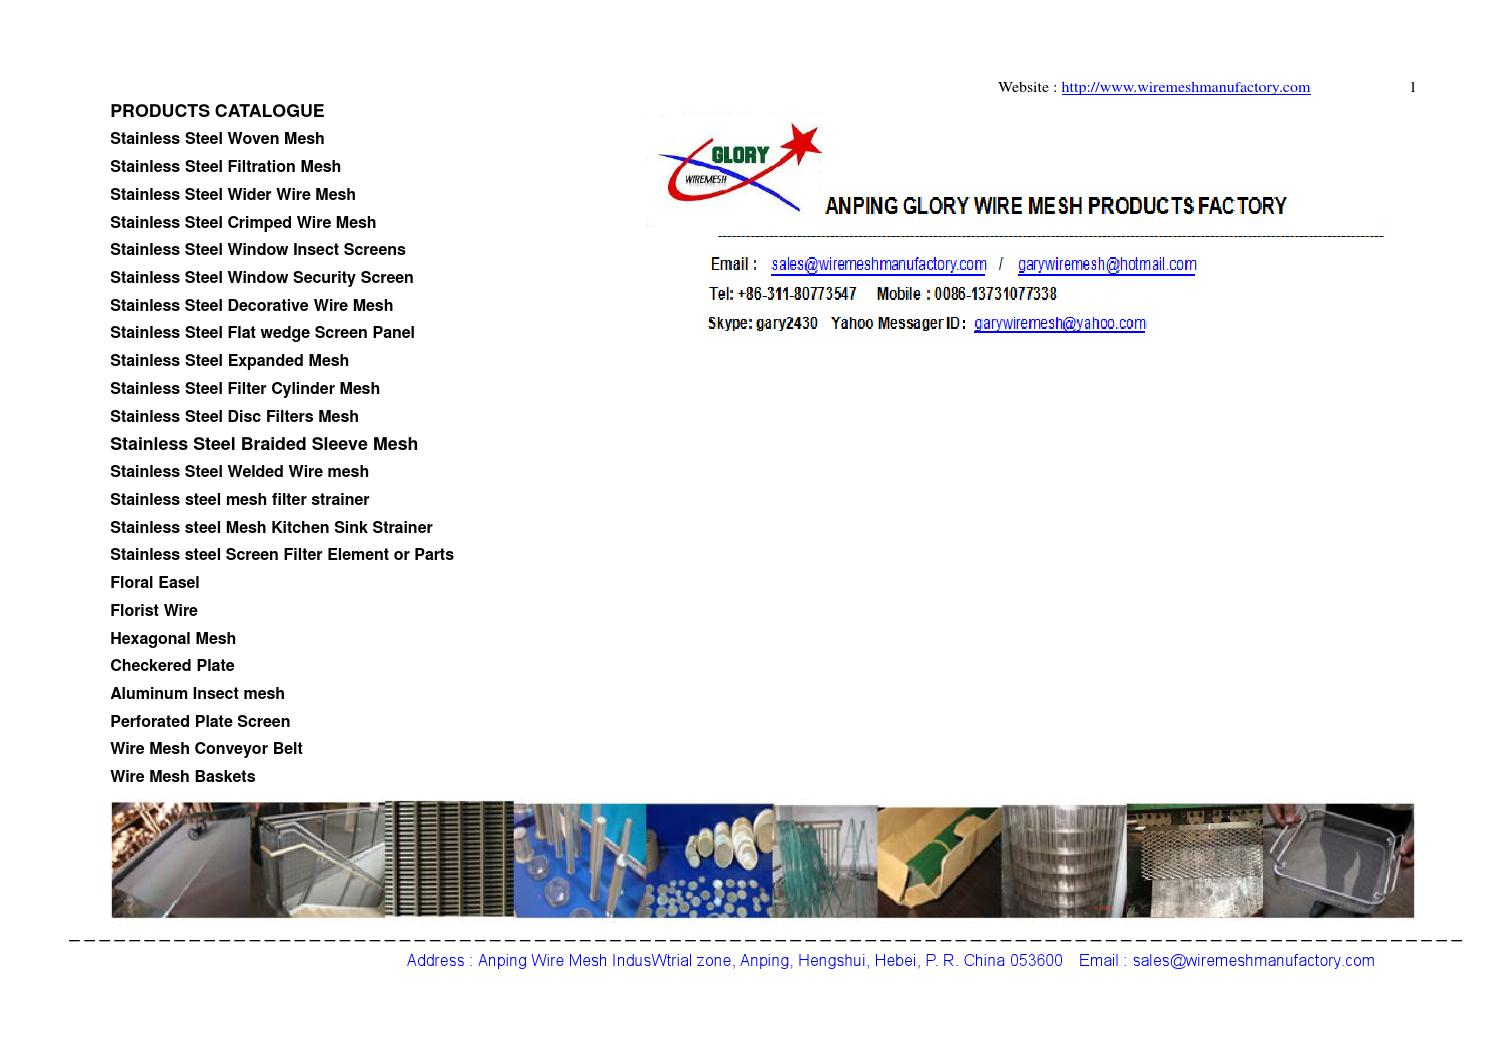 Products list of glory wire mesh products factory by Gary yan - issuu